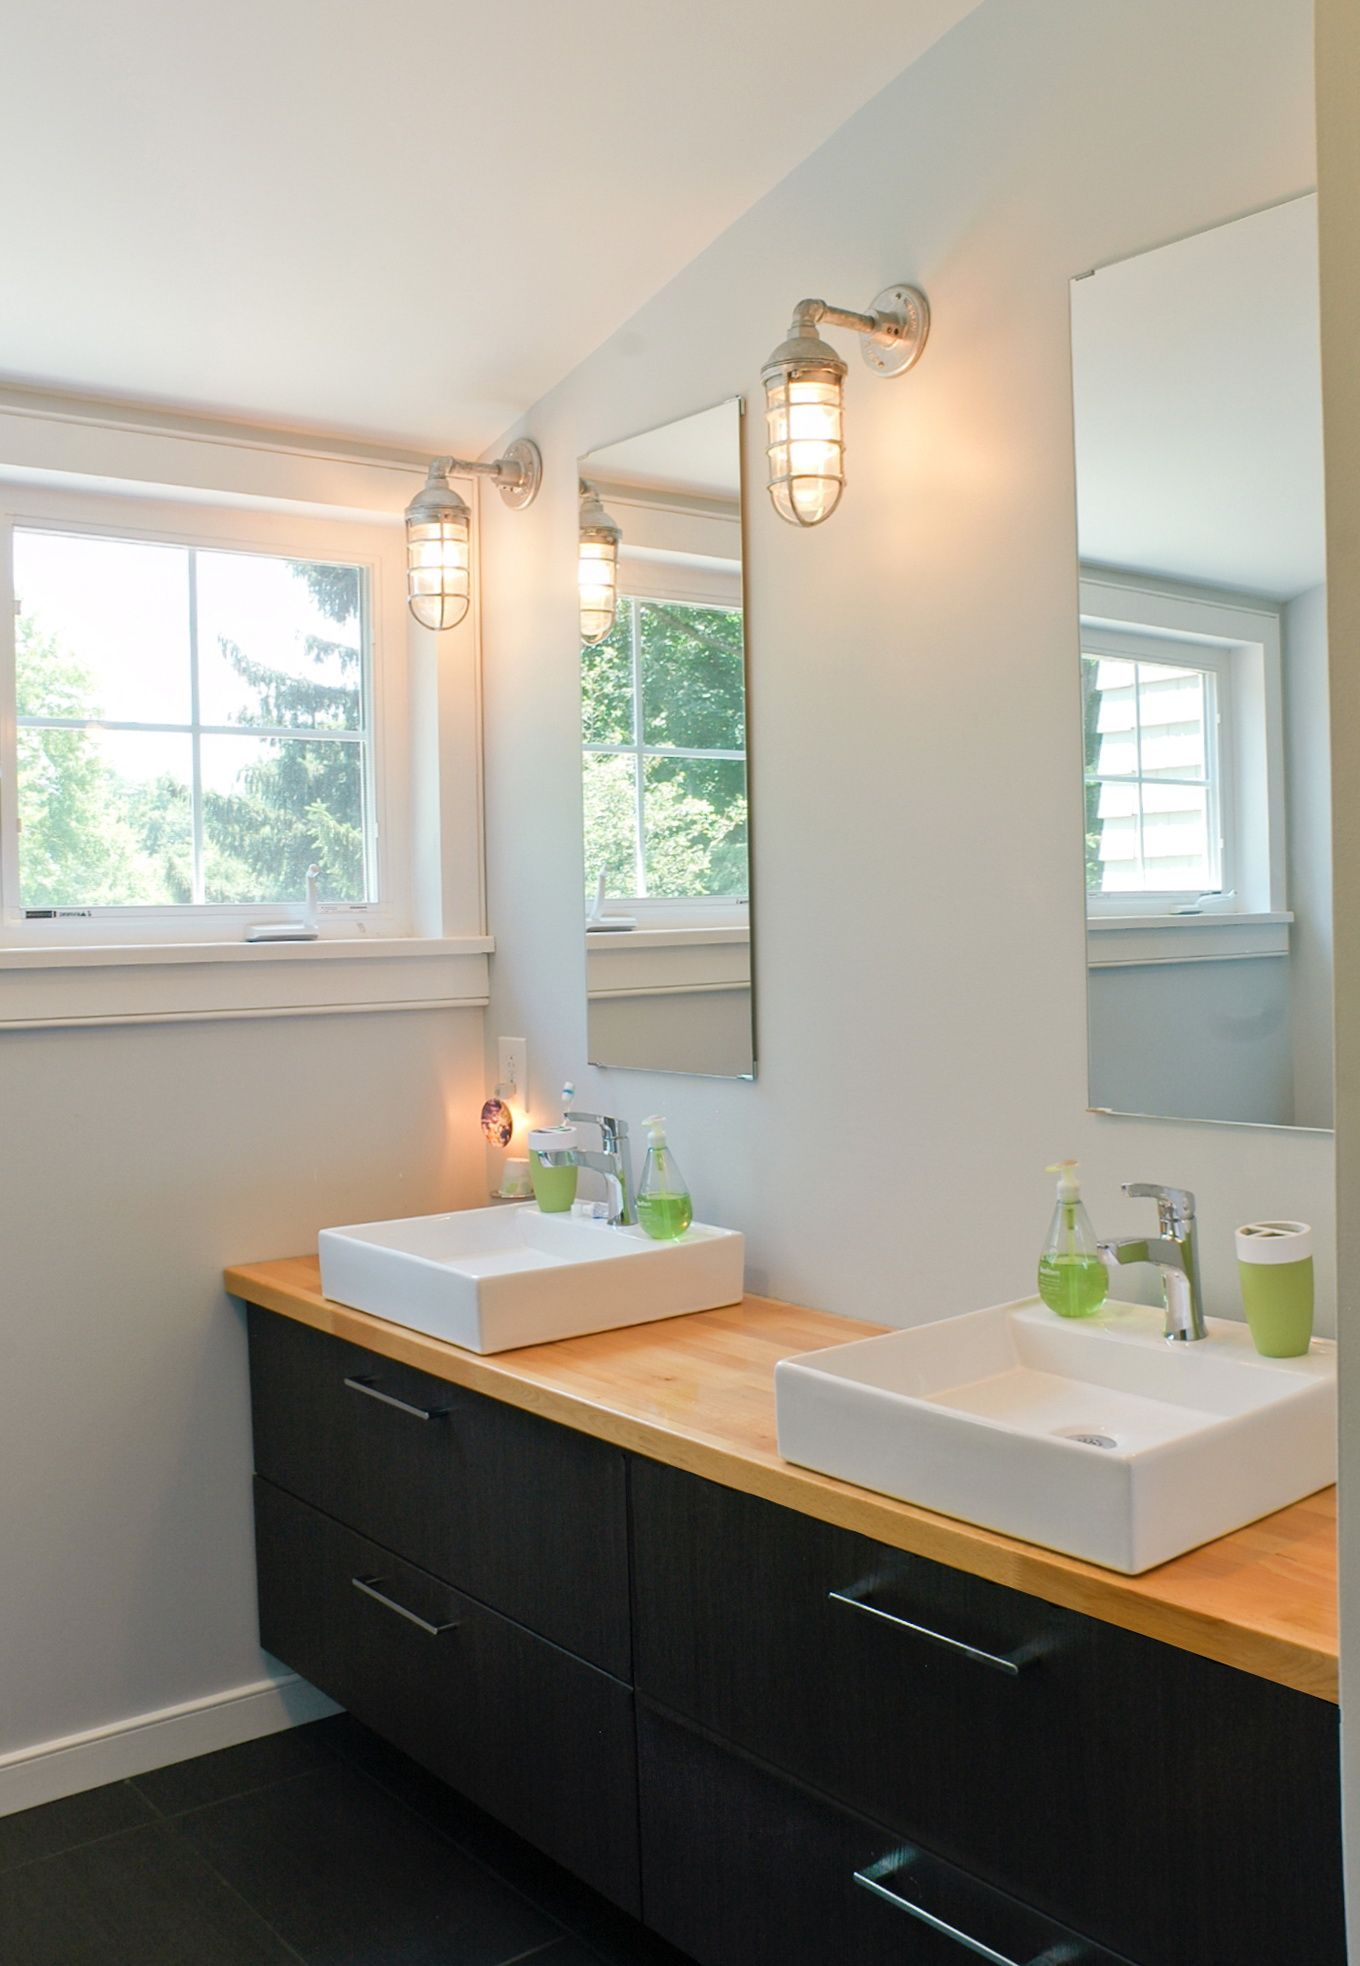 Ikea Bathroom Vanity Hack Home Inspiration Pinterest Collection Of